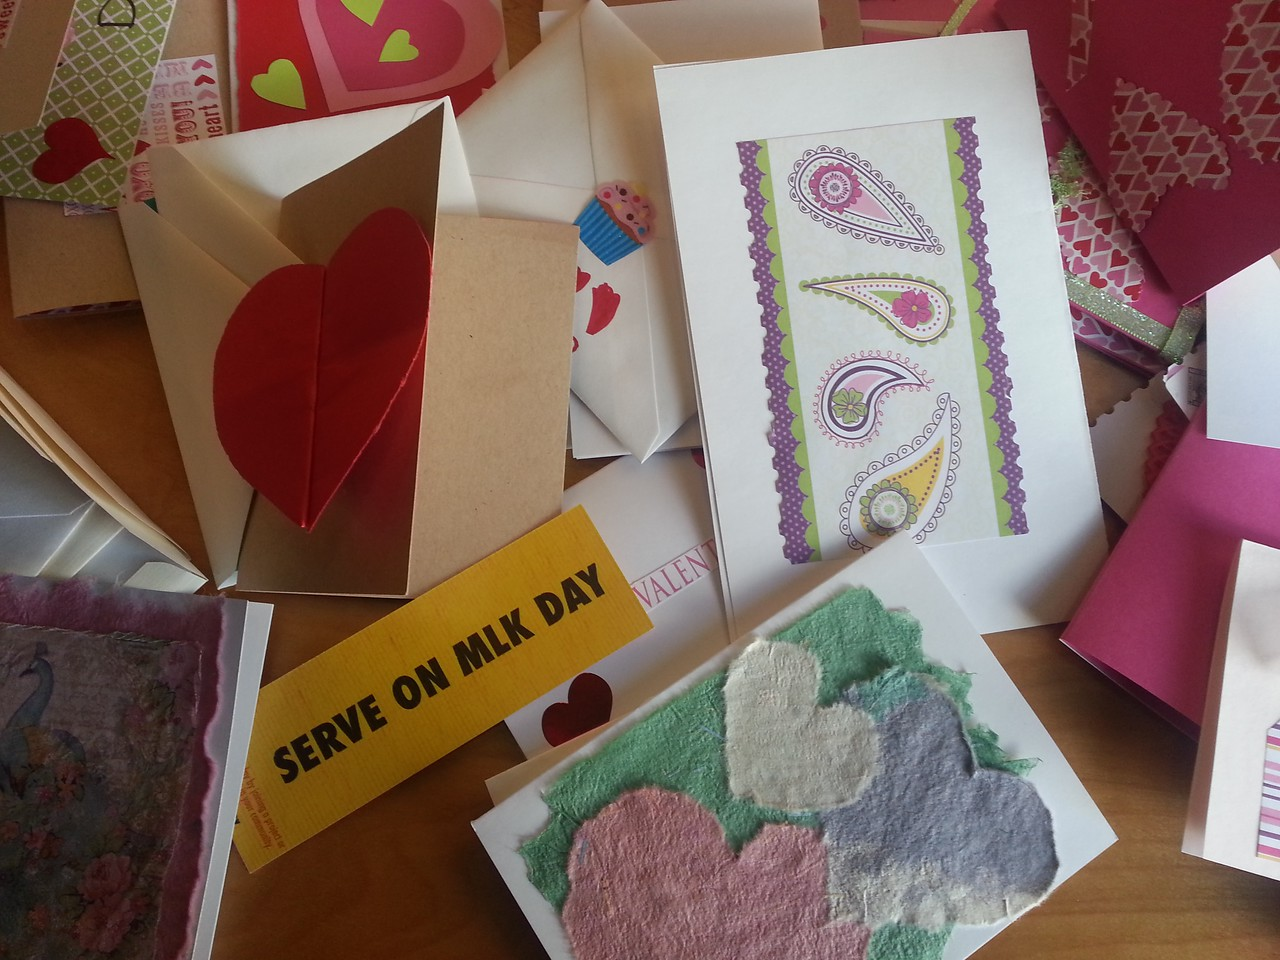 In Nashville, TN approximately 50 RSVP volunteers and their grandchildren and friends gathered to sort and distribute food for Meals on Wheels clients and make greeting cards that will be sent to homebound seniors.